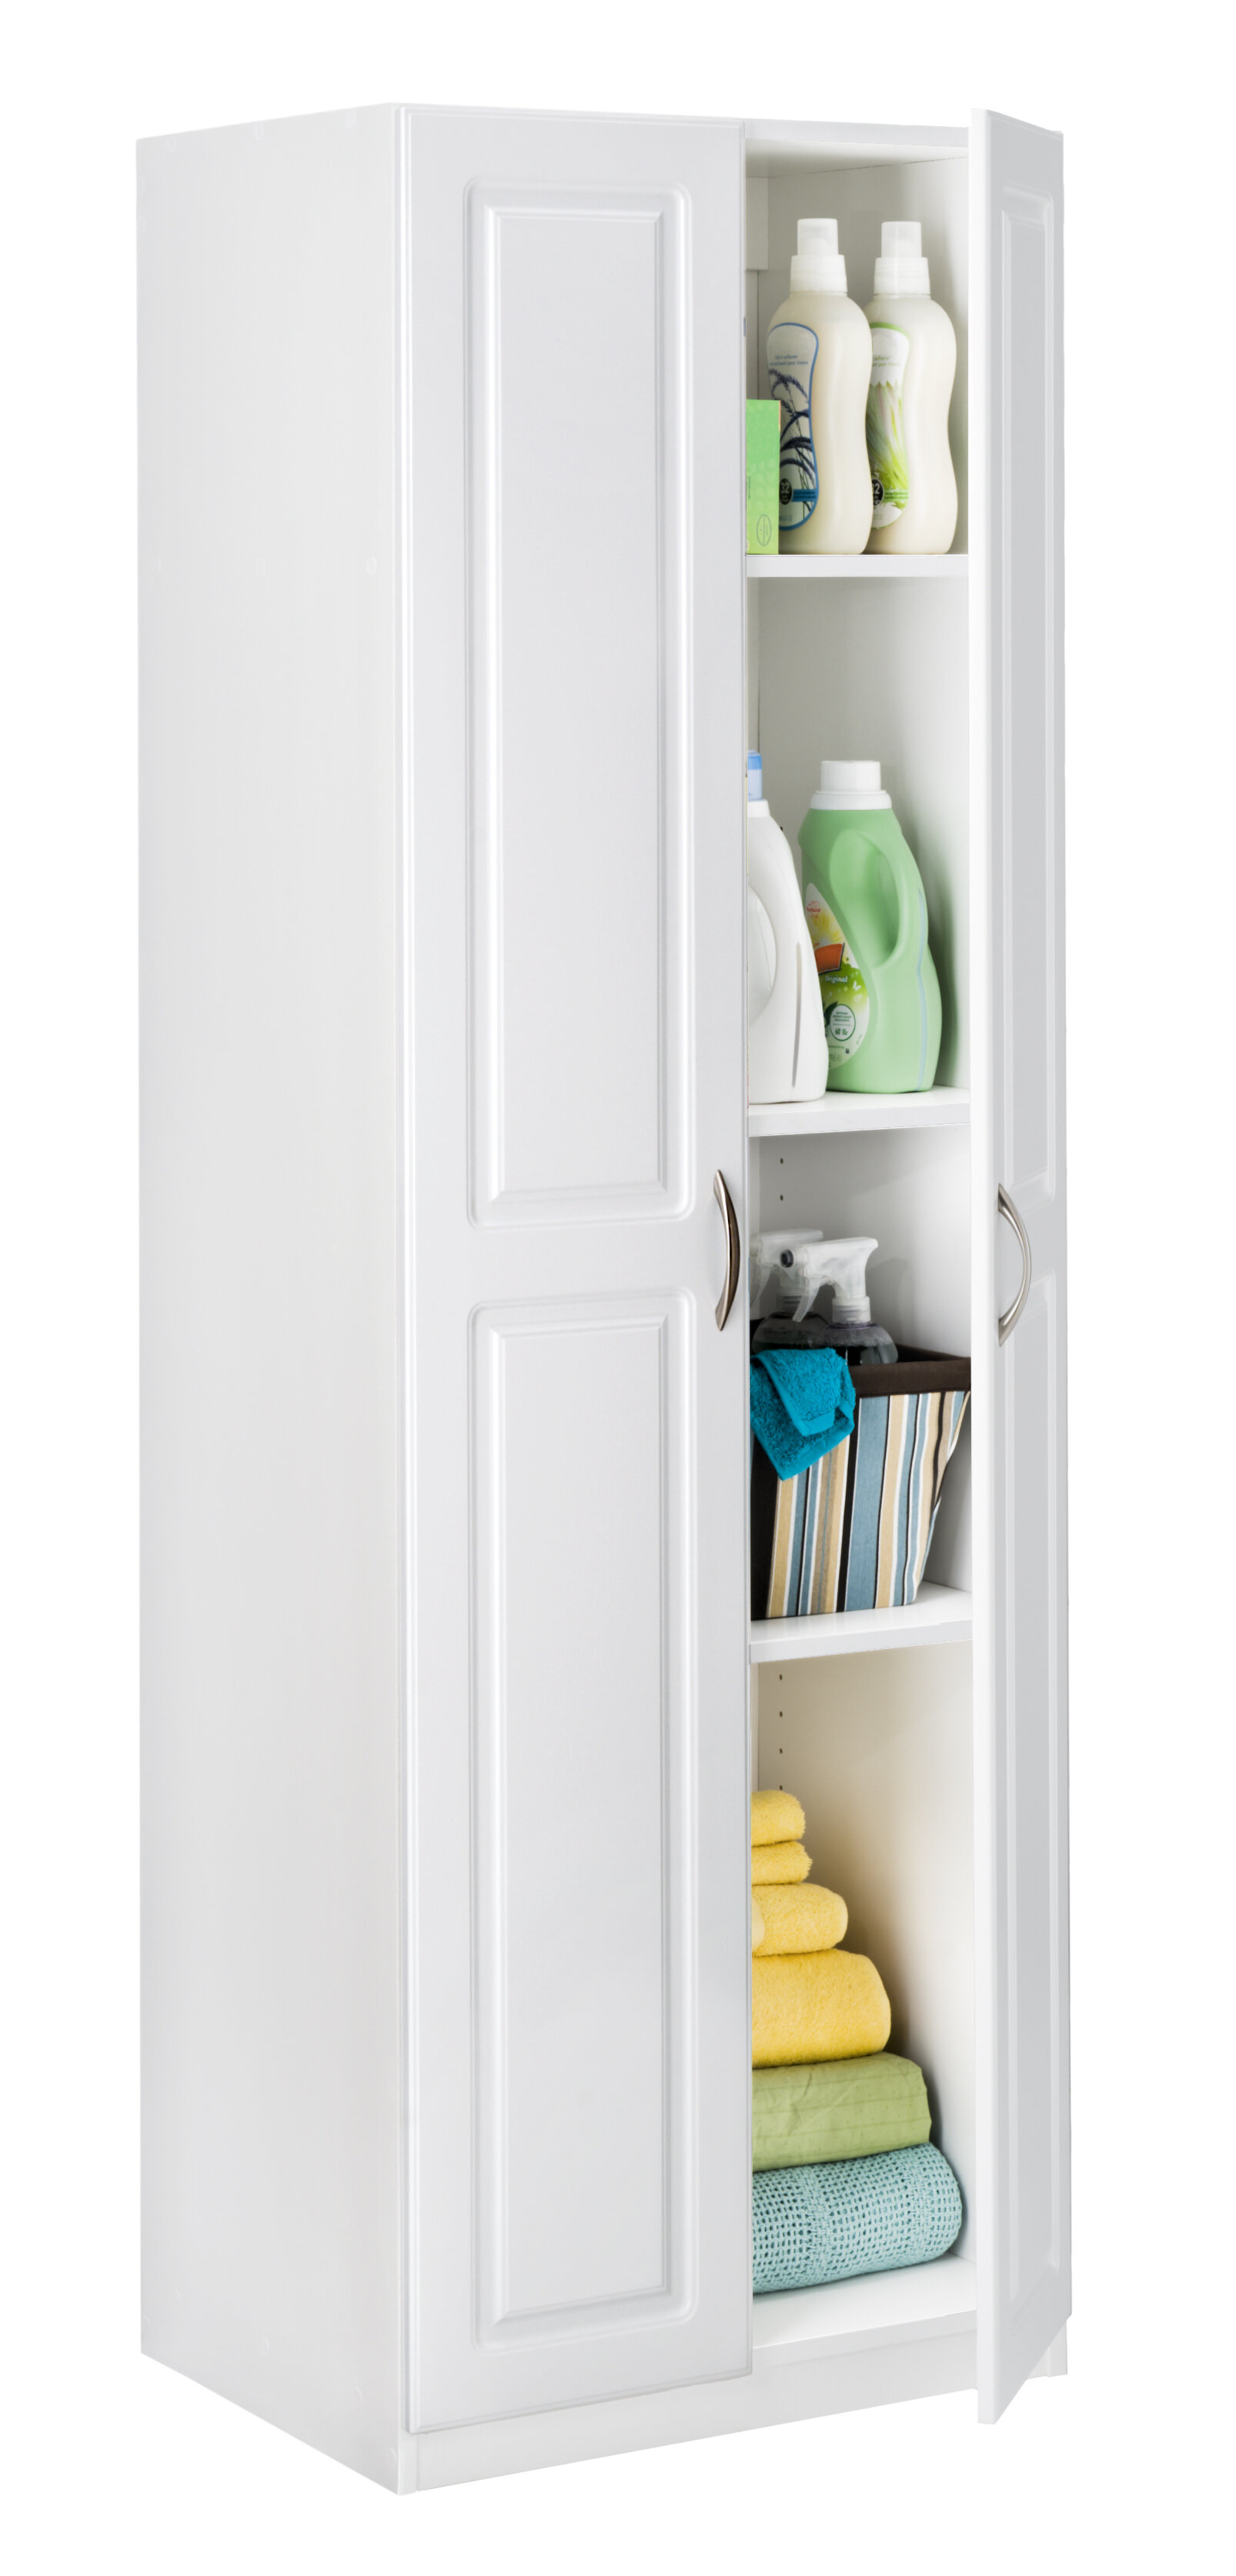 D Storage Cabinet Reviews